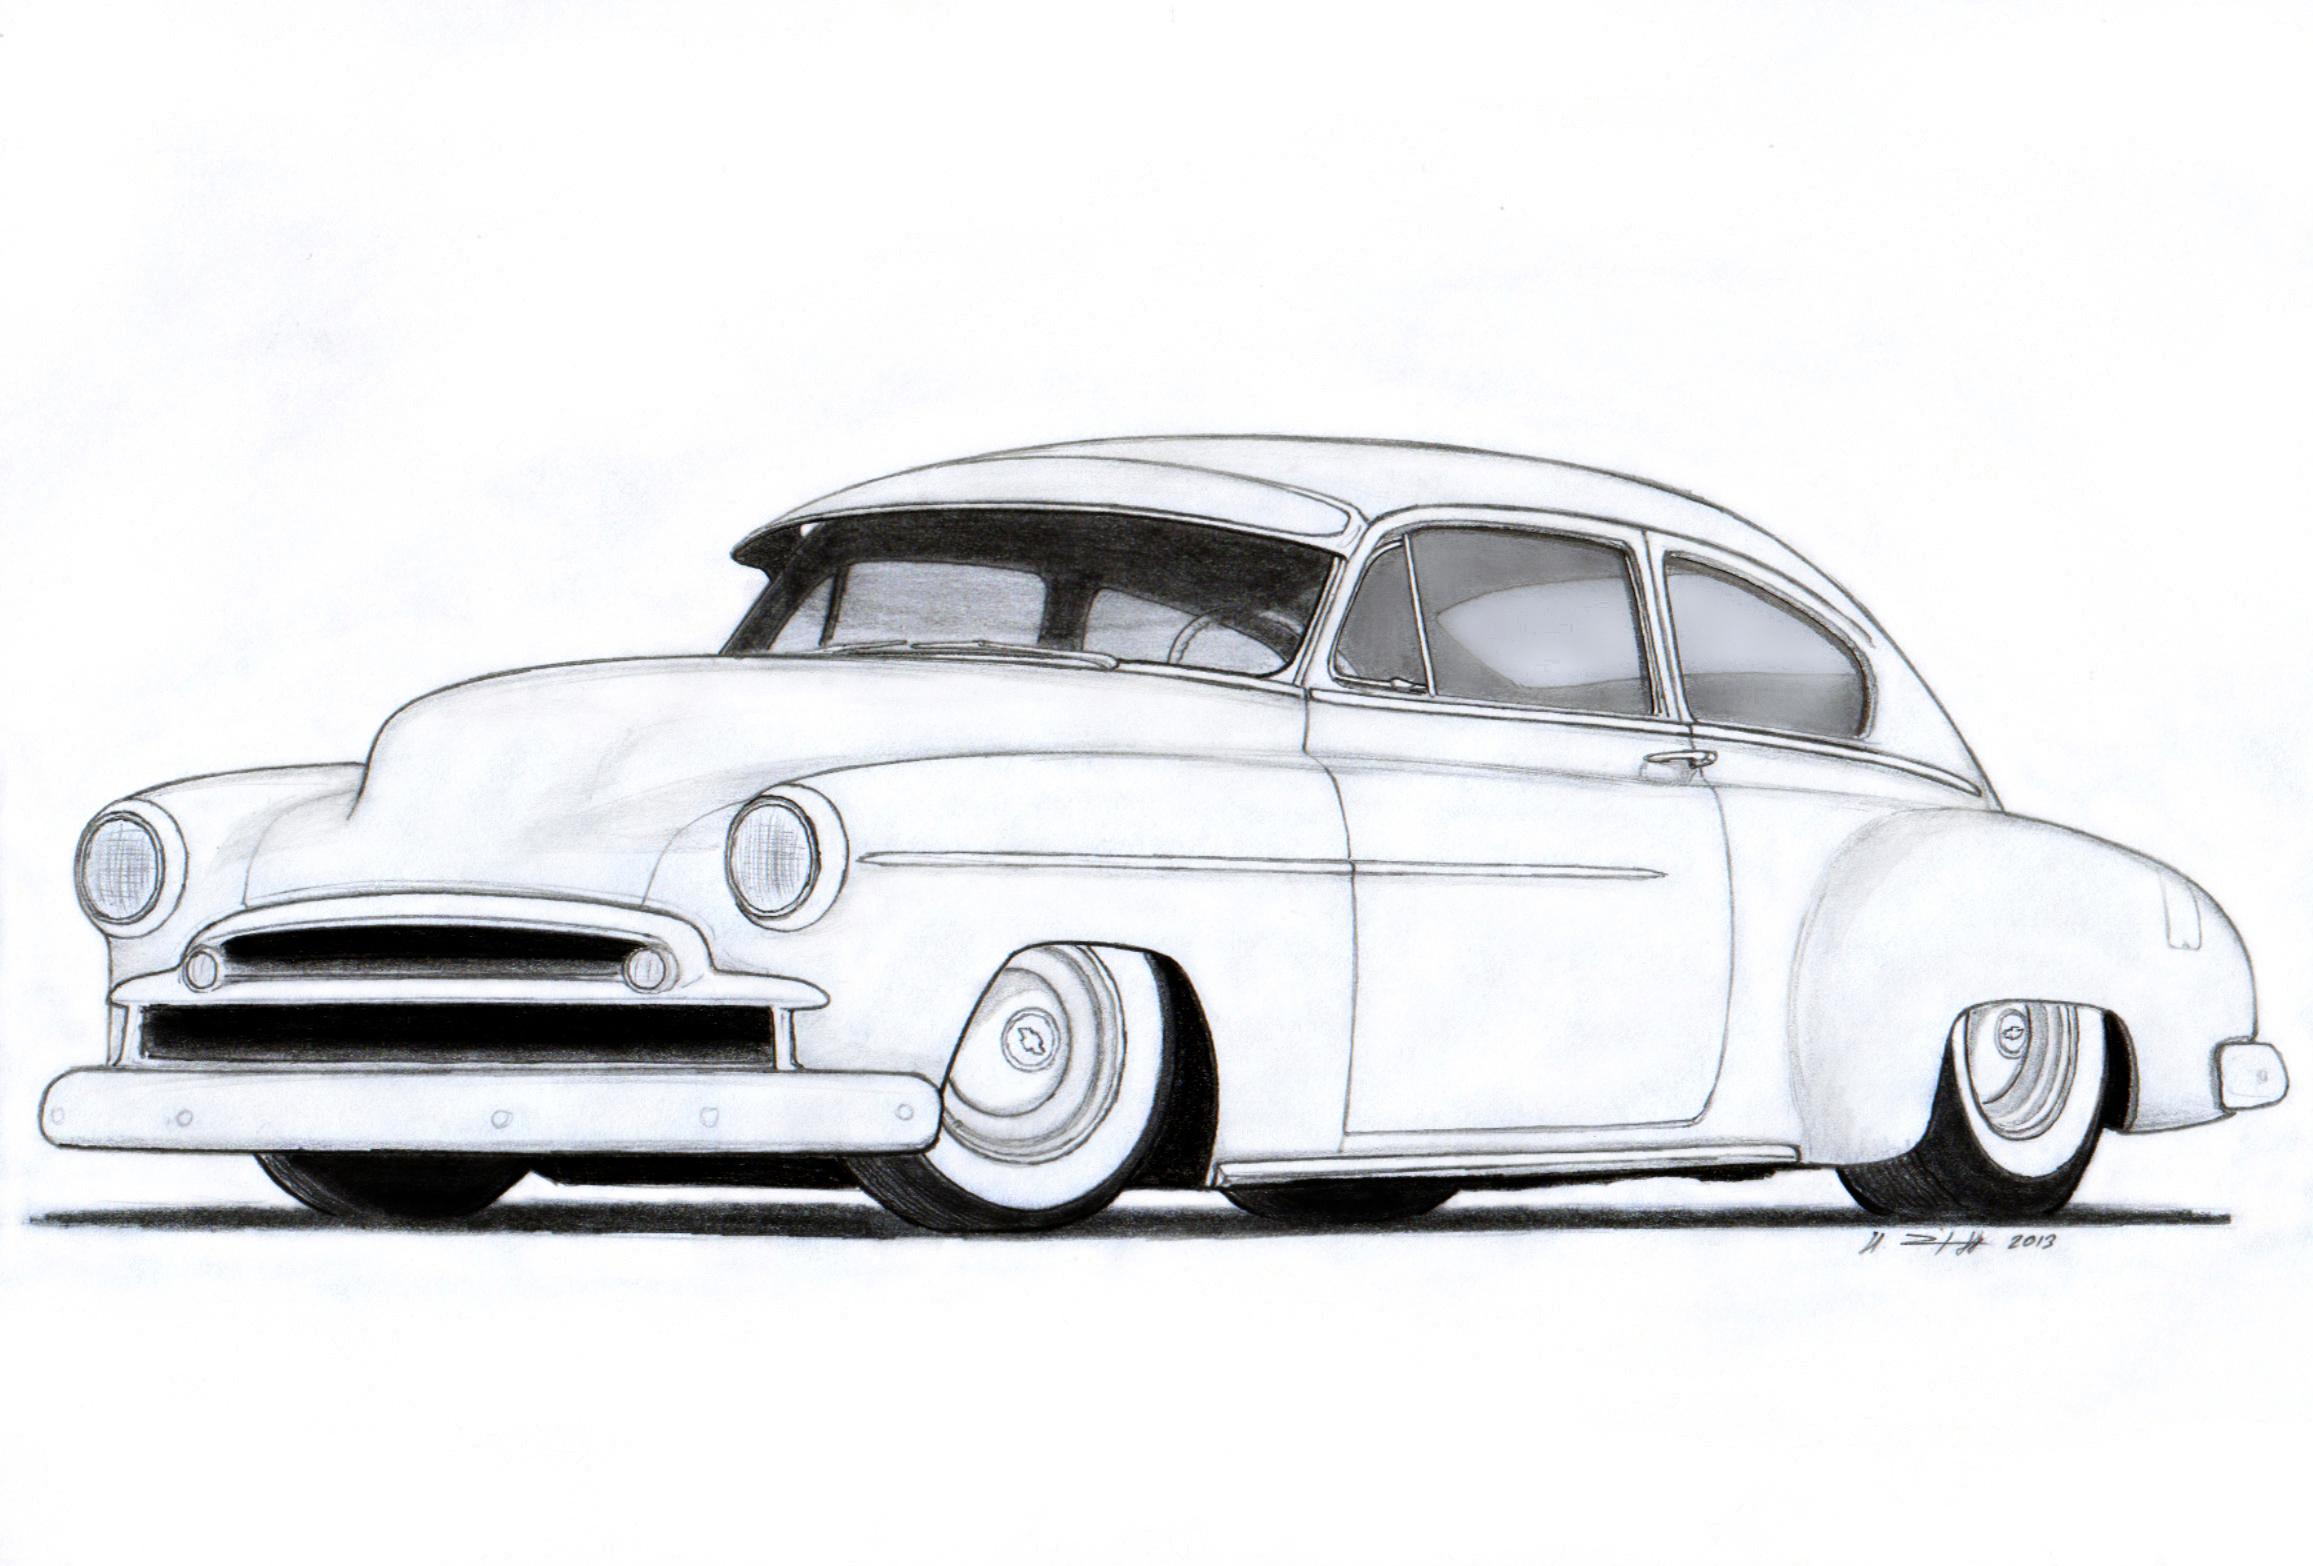 drawings technical drawings 2013 2015 vertualissimo done with hb 3hLowrider Chevy Truck Drawings